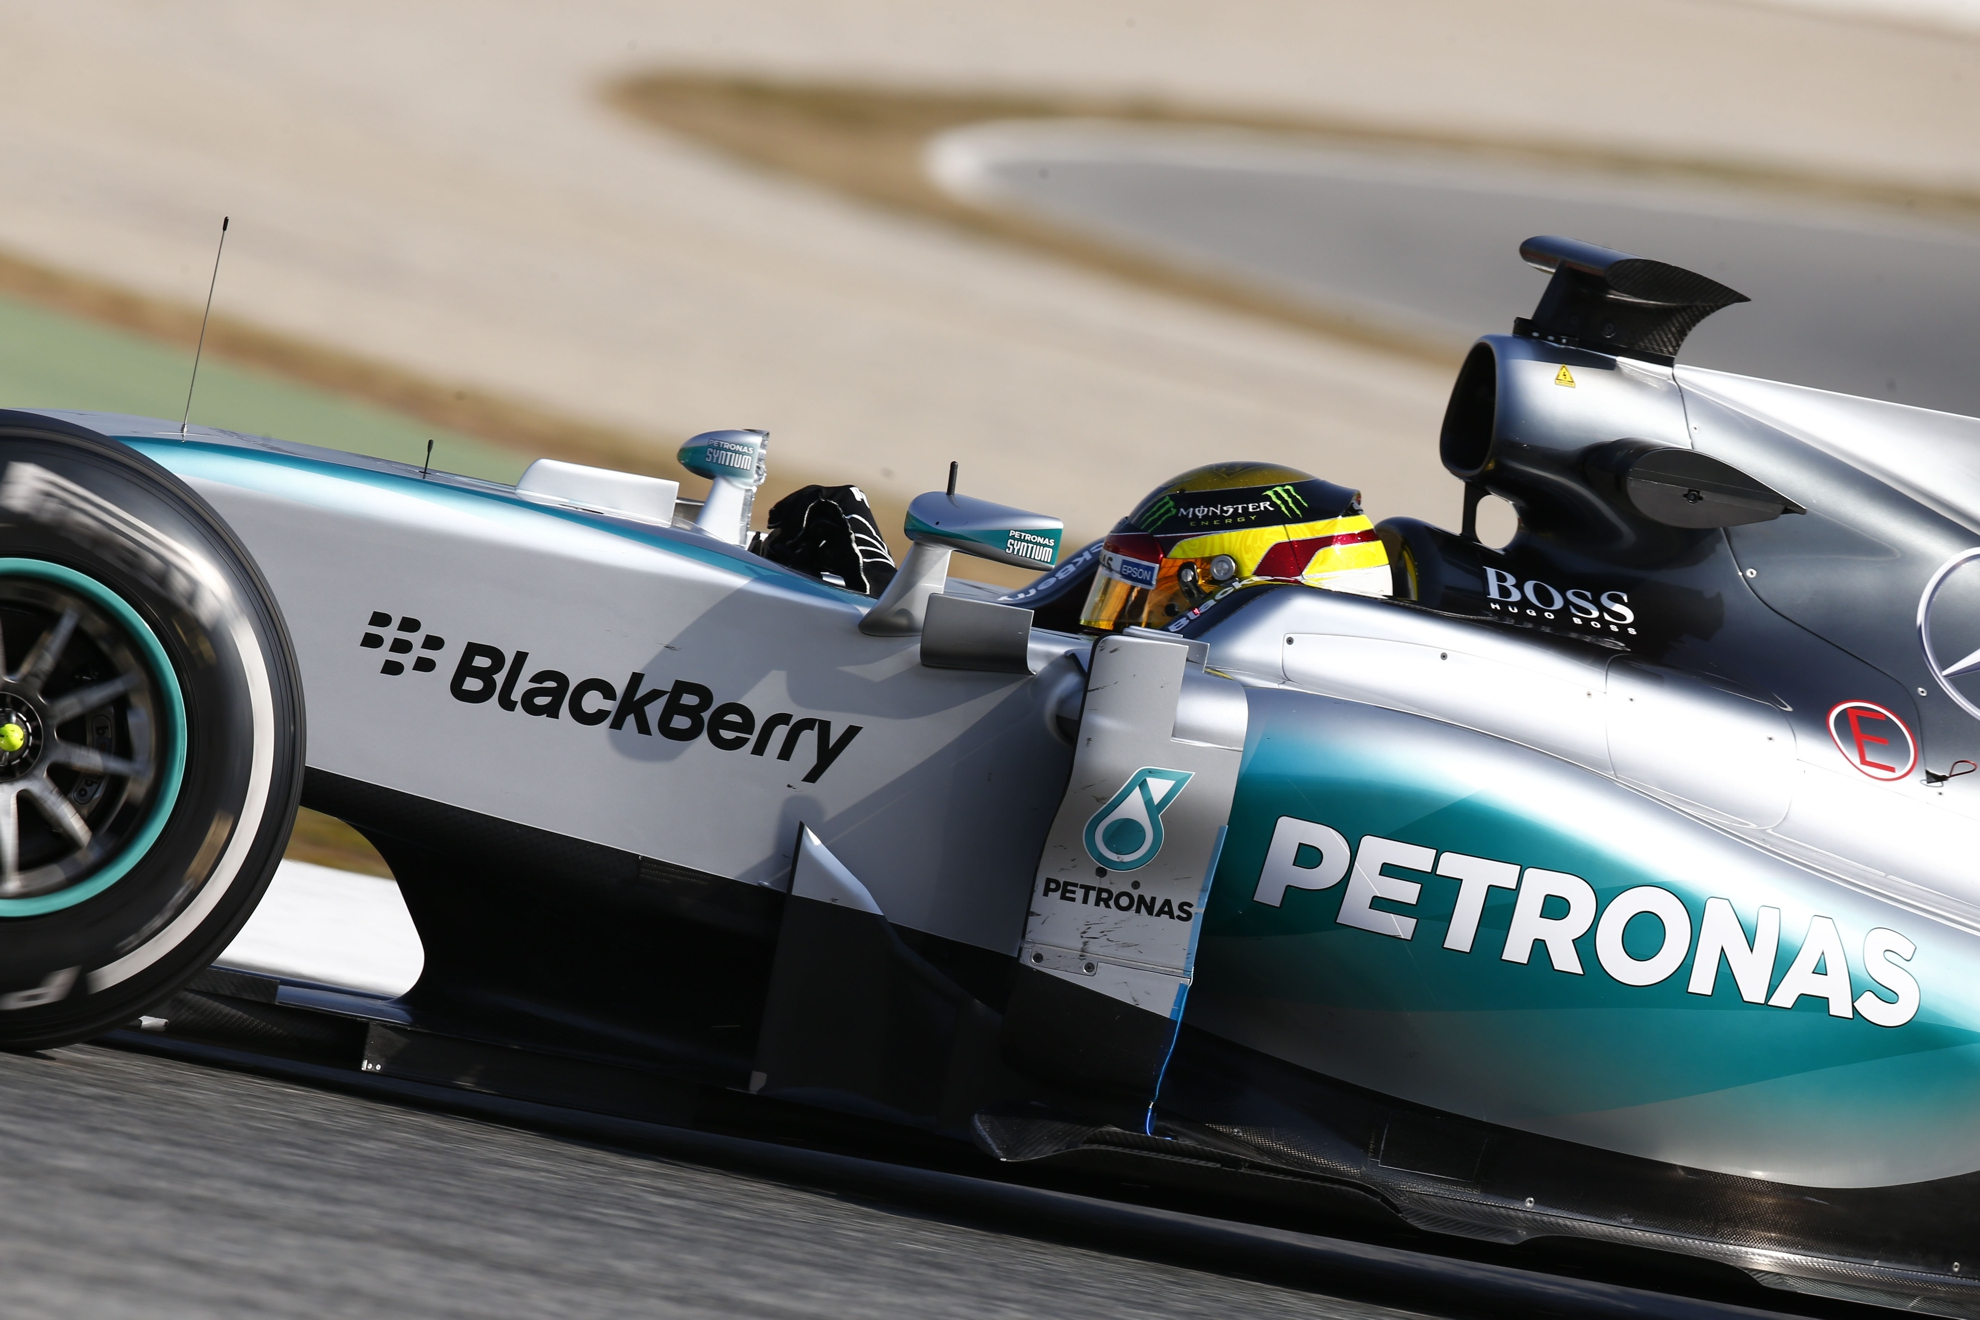 mercedes amg petronas announces new partnership with bose ahead of 2015 season. Black Bedroom Furniture Sets. Home Design Ideas